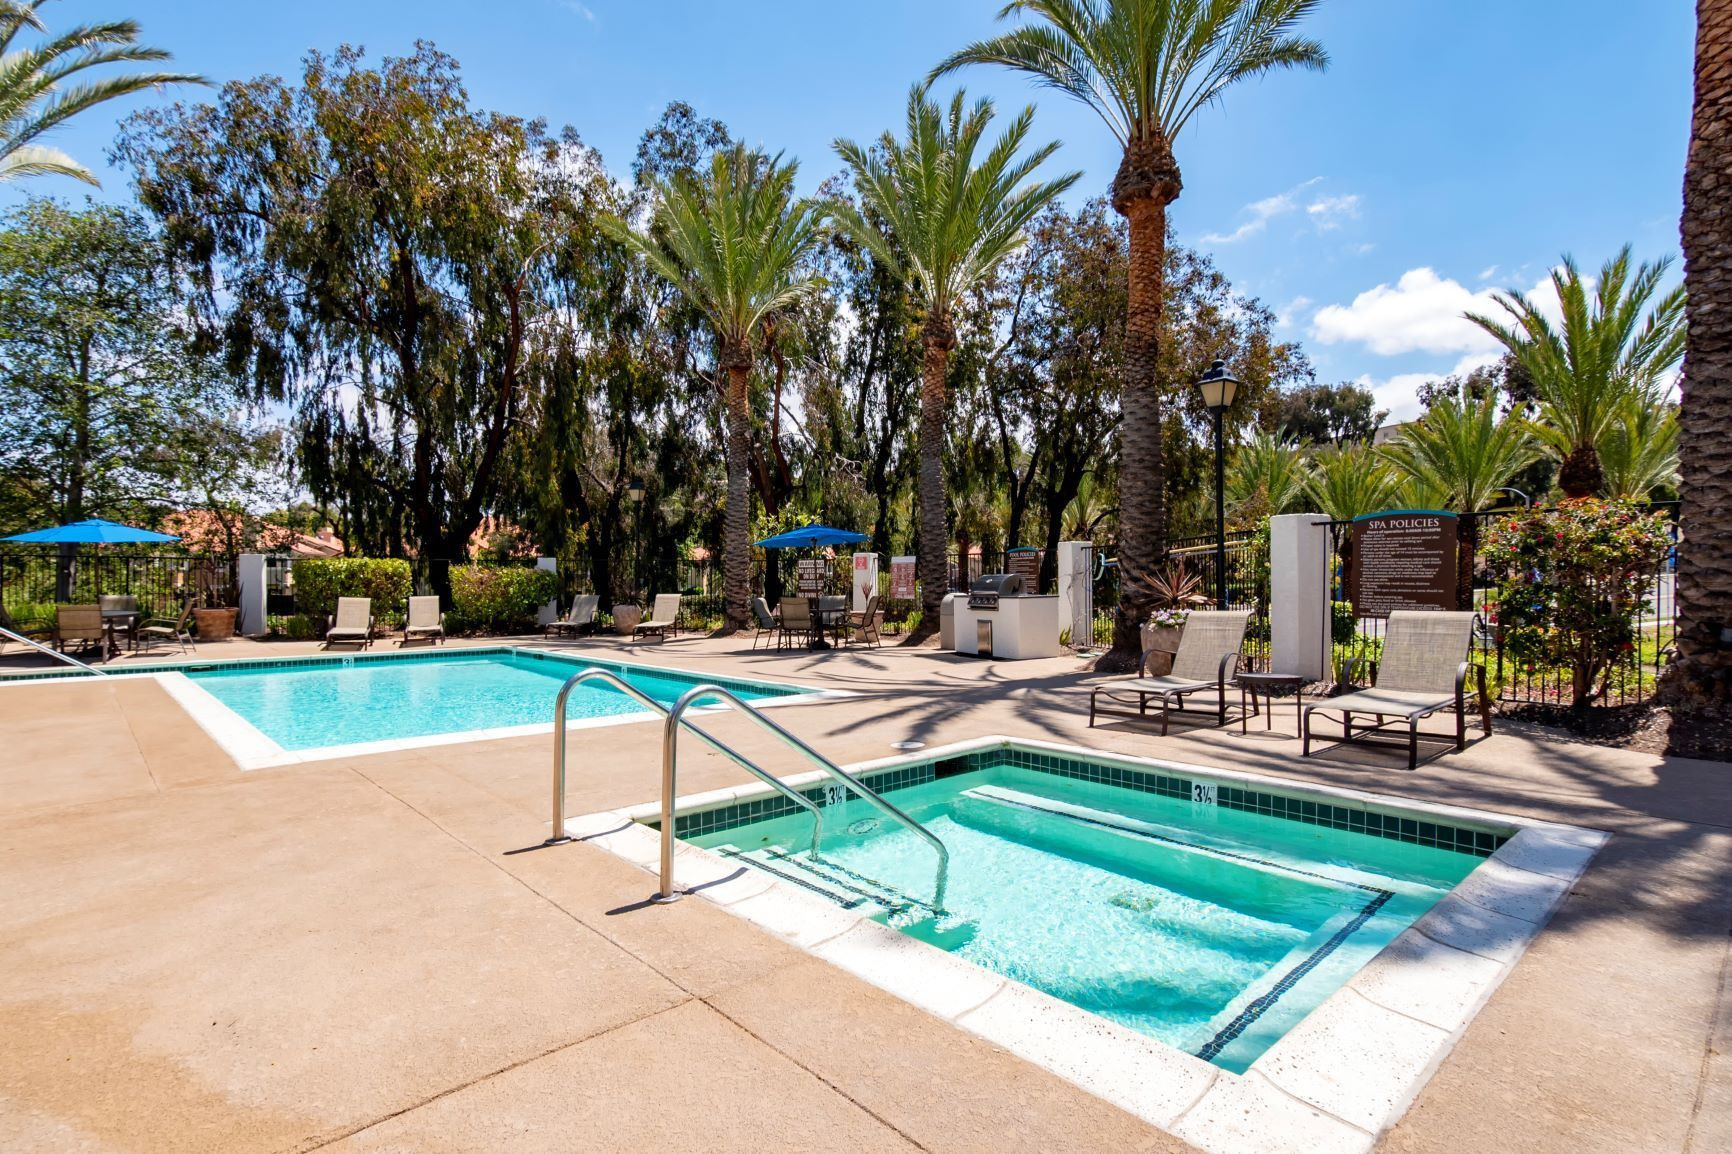 Apartments Near MiraCosta Sunset View for Mira Costa College Students in Oceanside, CA